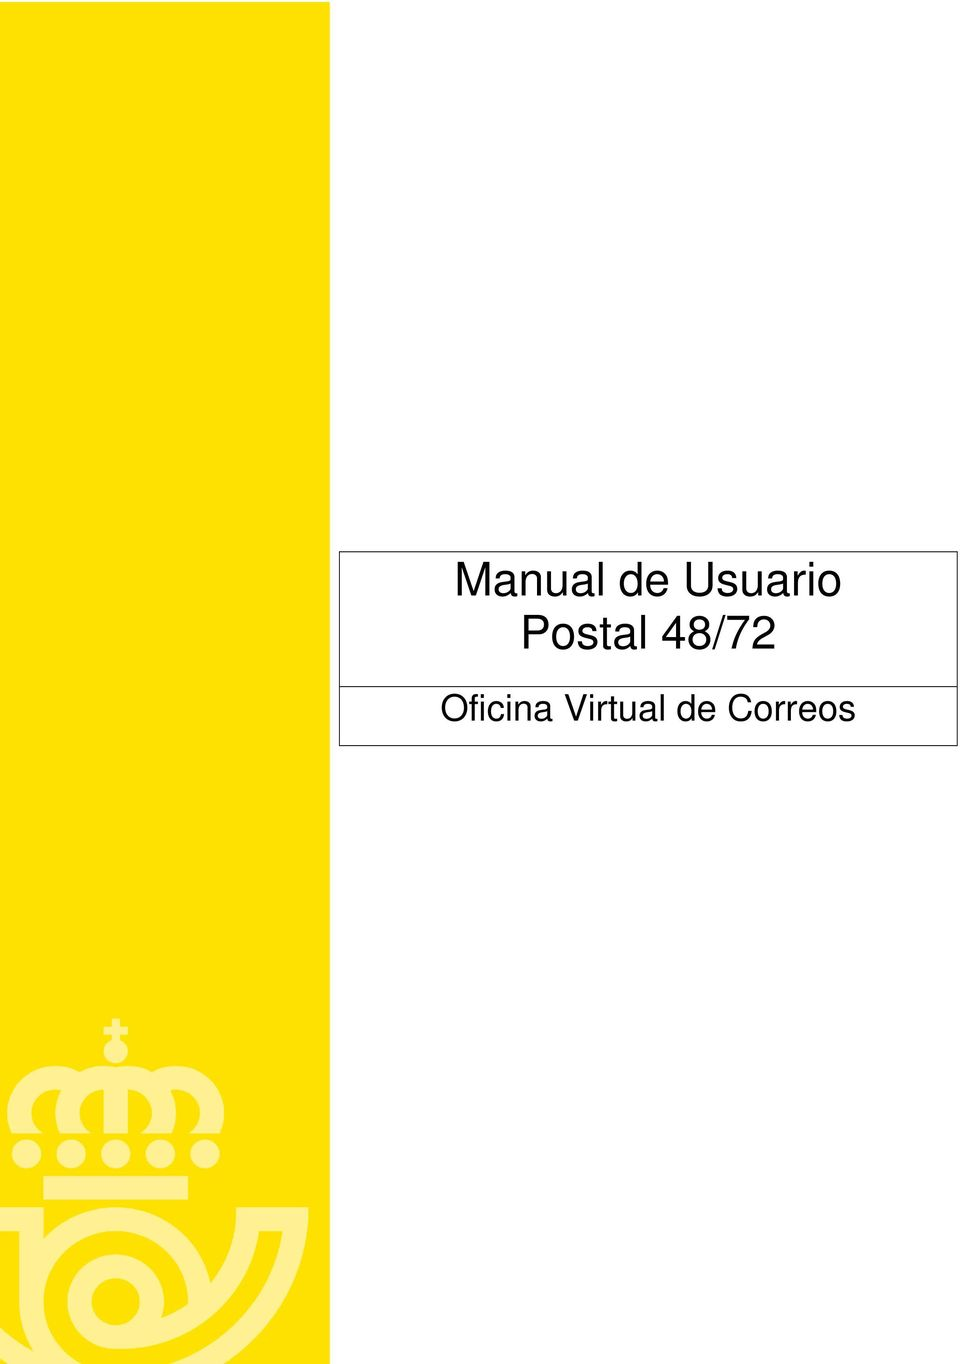 Manual de usuario postal 48 72 oficina virtual de correos for Correos es oficina virtual